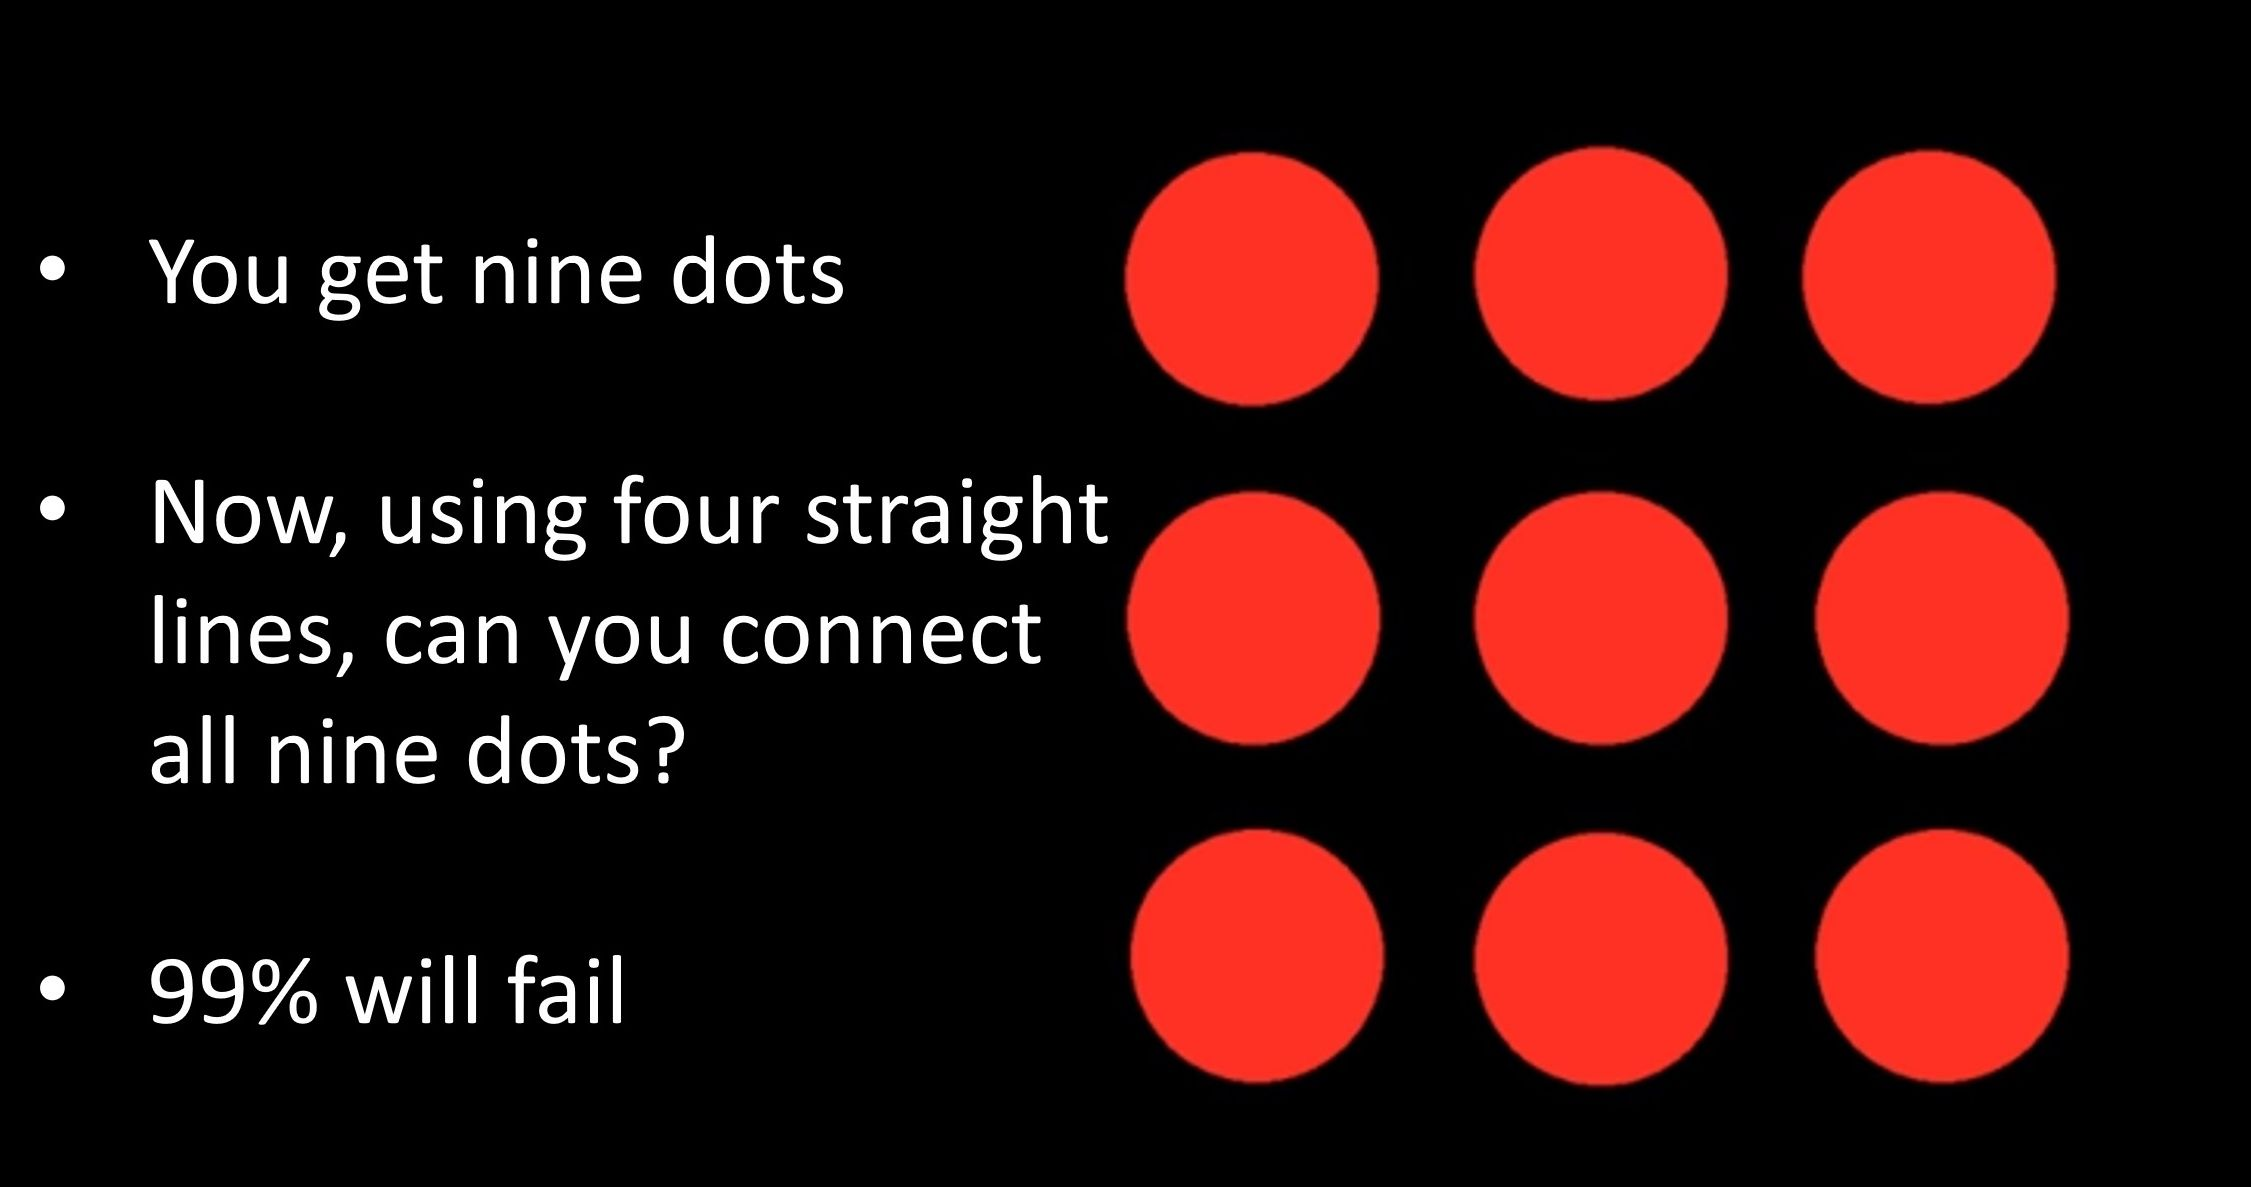 Can You Connect ALL The Dots Using Four Straight Lines